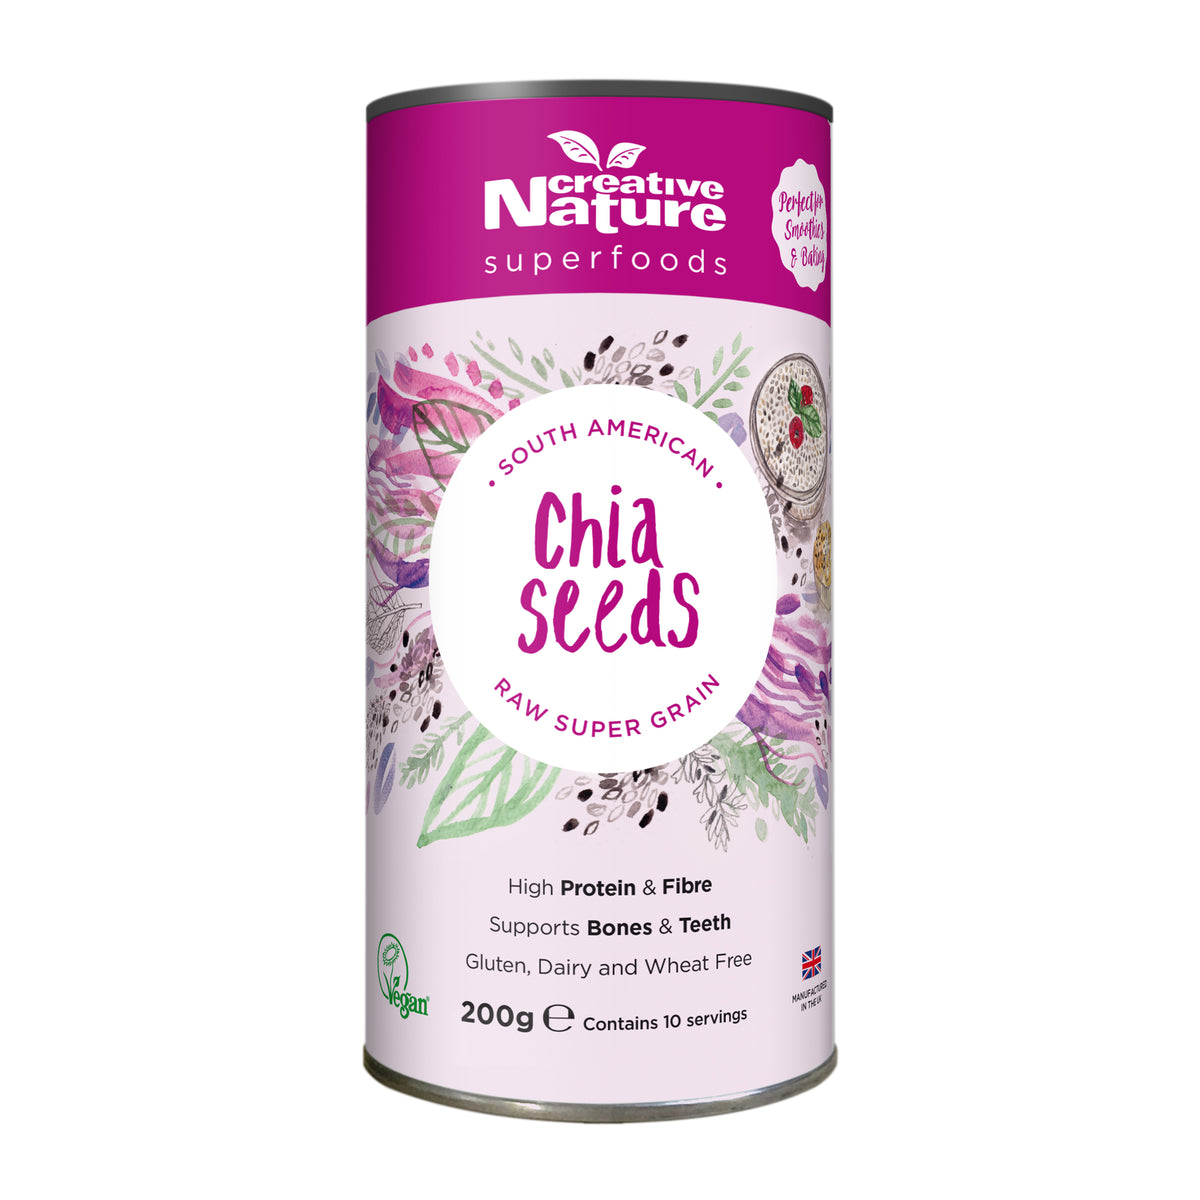 Creative Nature Chia Seeds (200g)